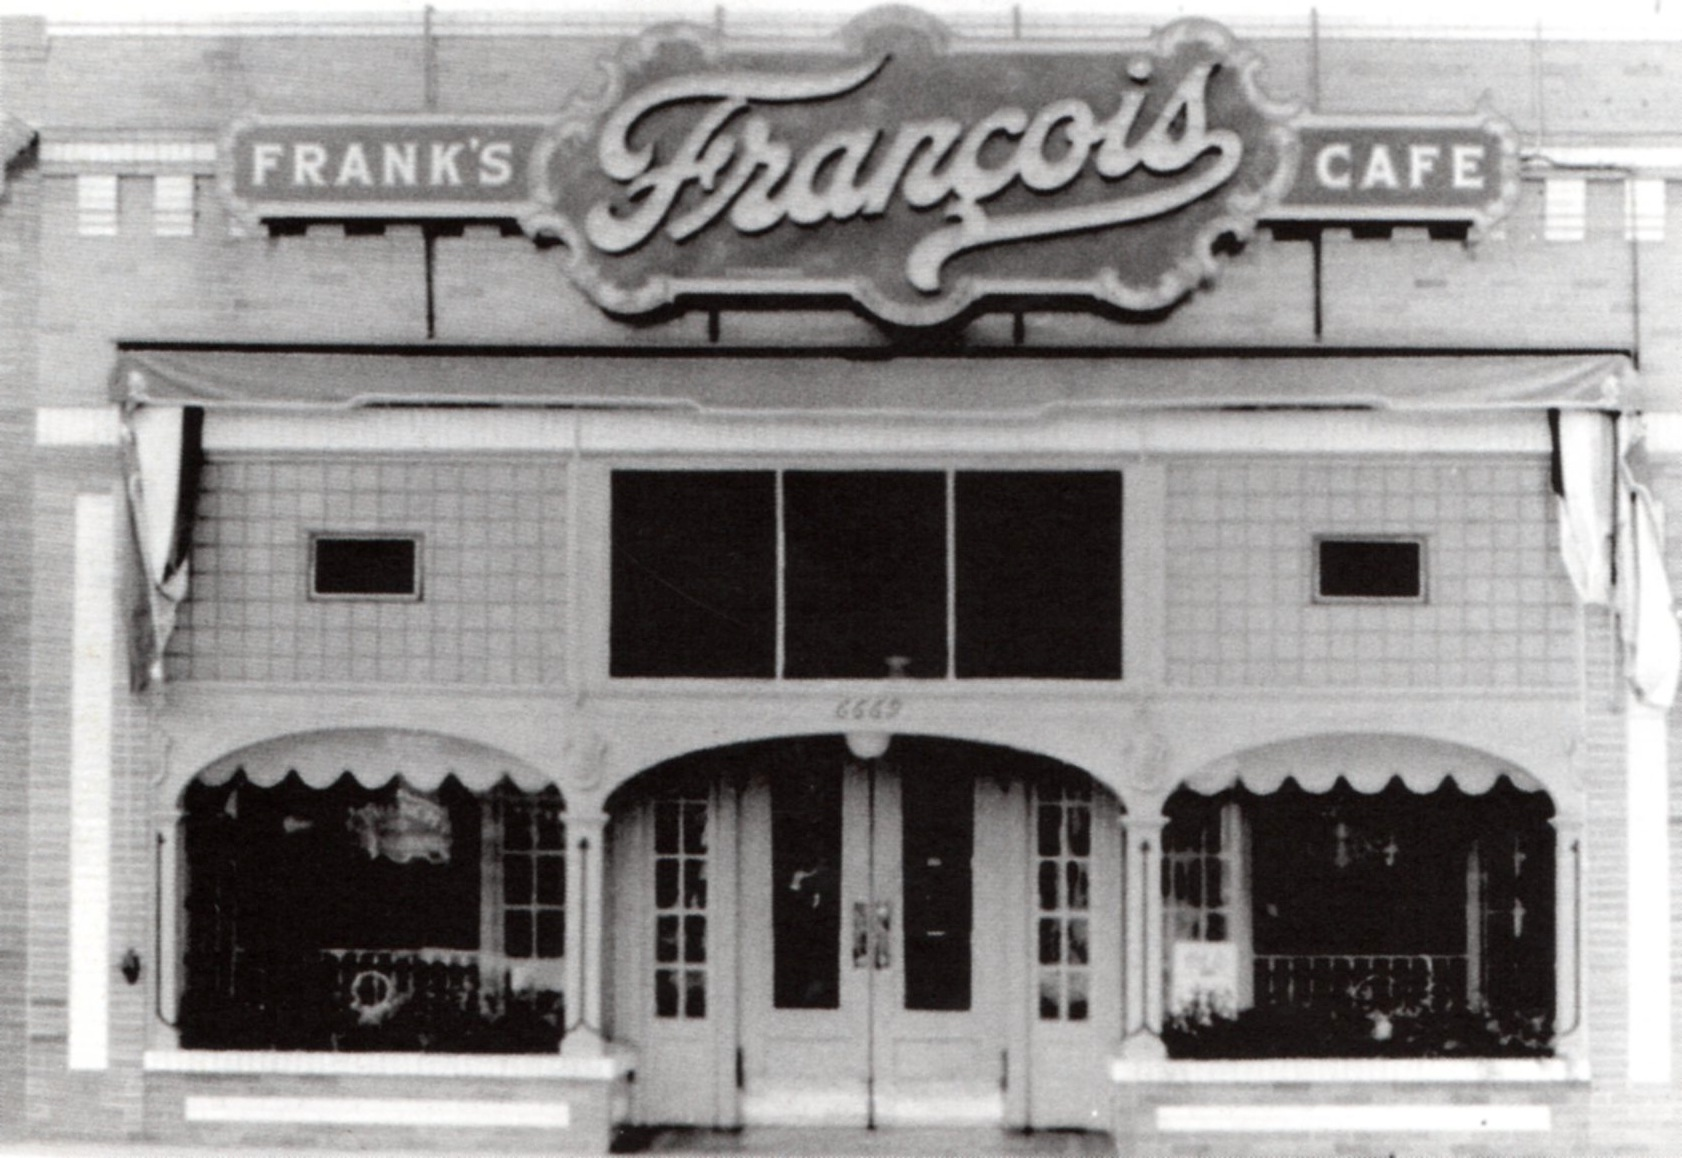 Frank s francois caf 1919 to 1923 before it became musso and frank grill at 6667 hollywood - Musso and frank grill hollywood ...